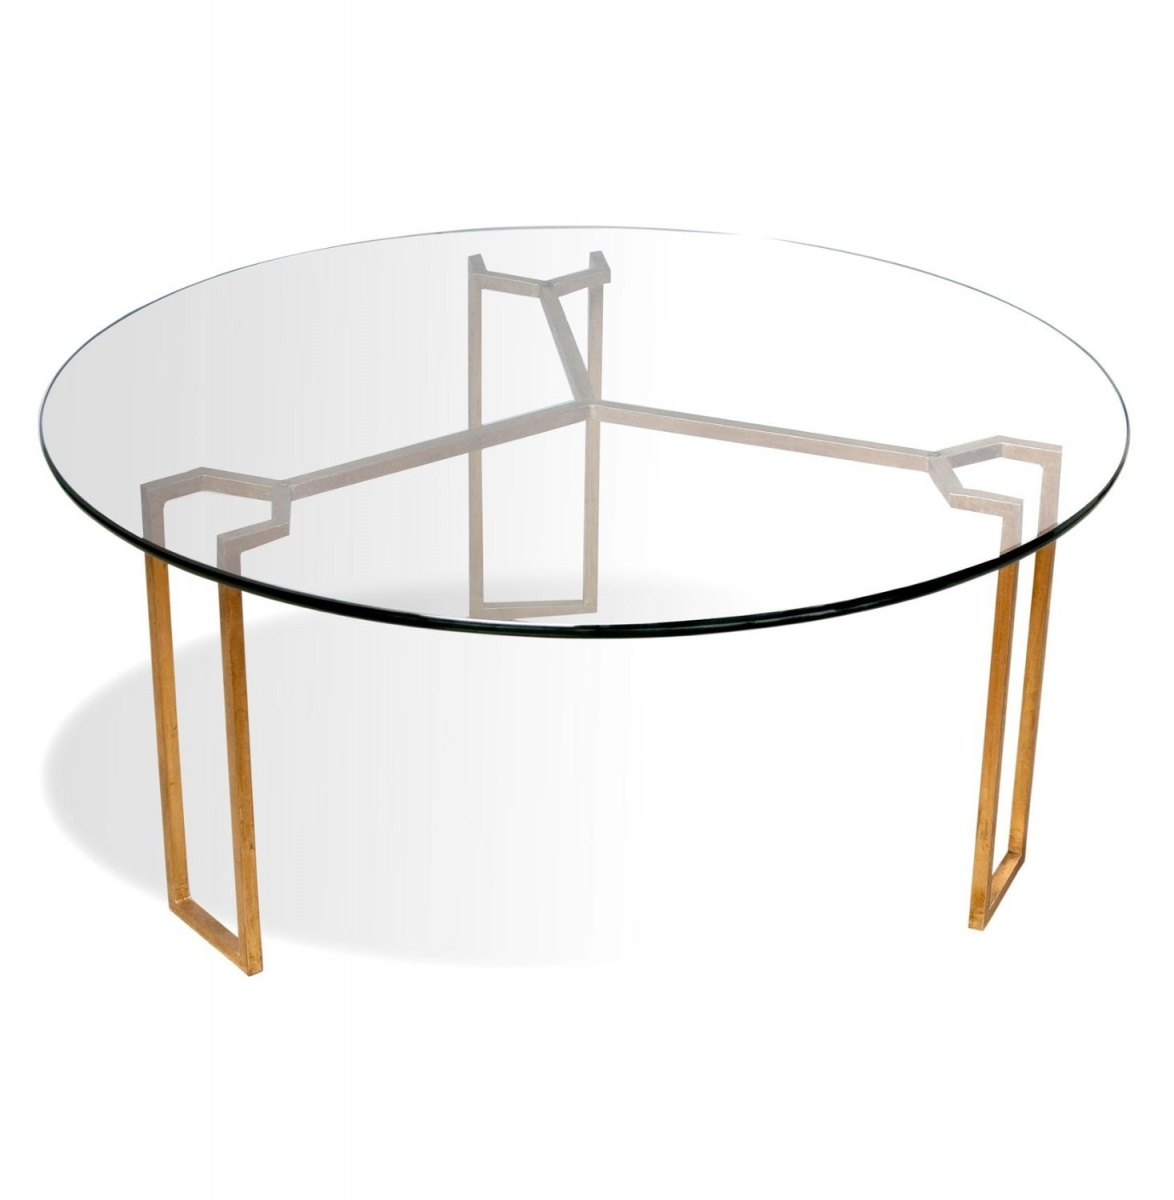 coffee tables ideas glass round table sets top outstanding furniture luxurious antique expensive golden brown wooden legs clean clear end night stands mission style small narrow